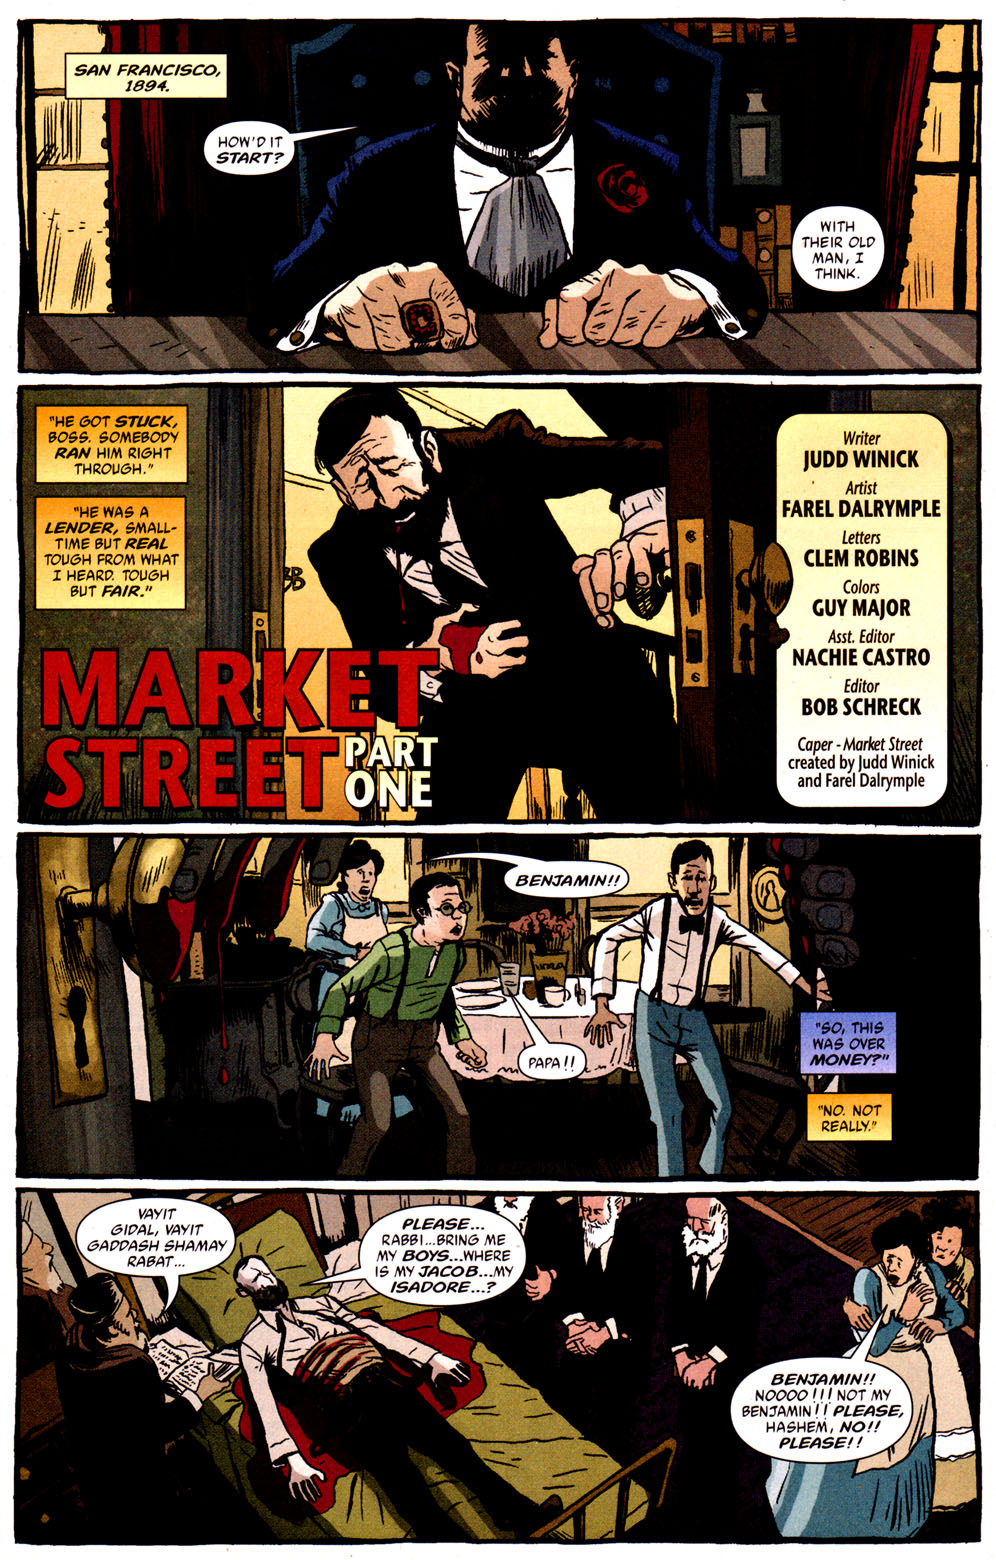 Read online Caper comic -  Issue #1 - 2